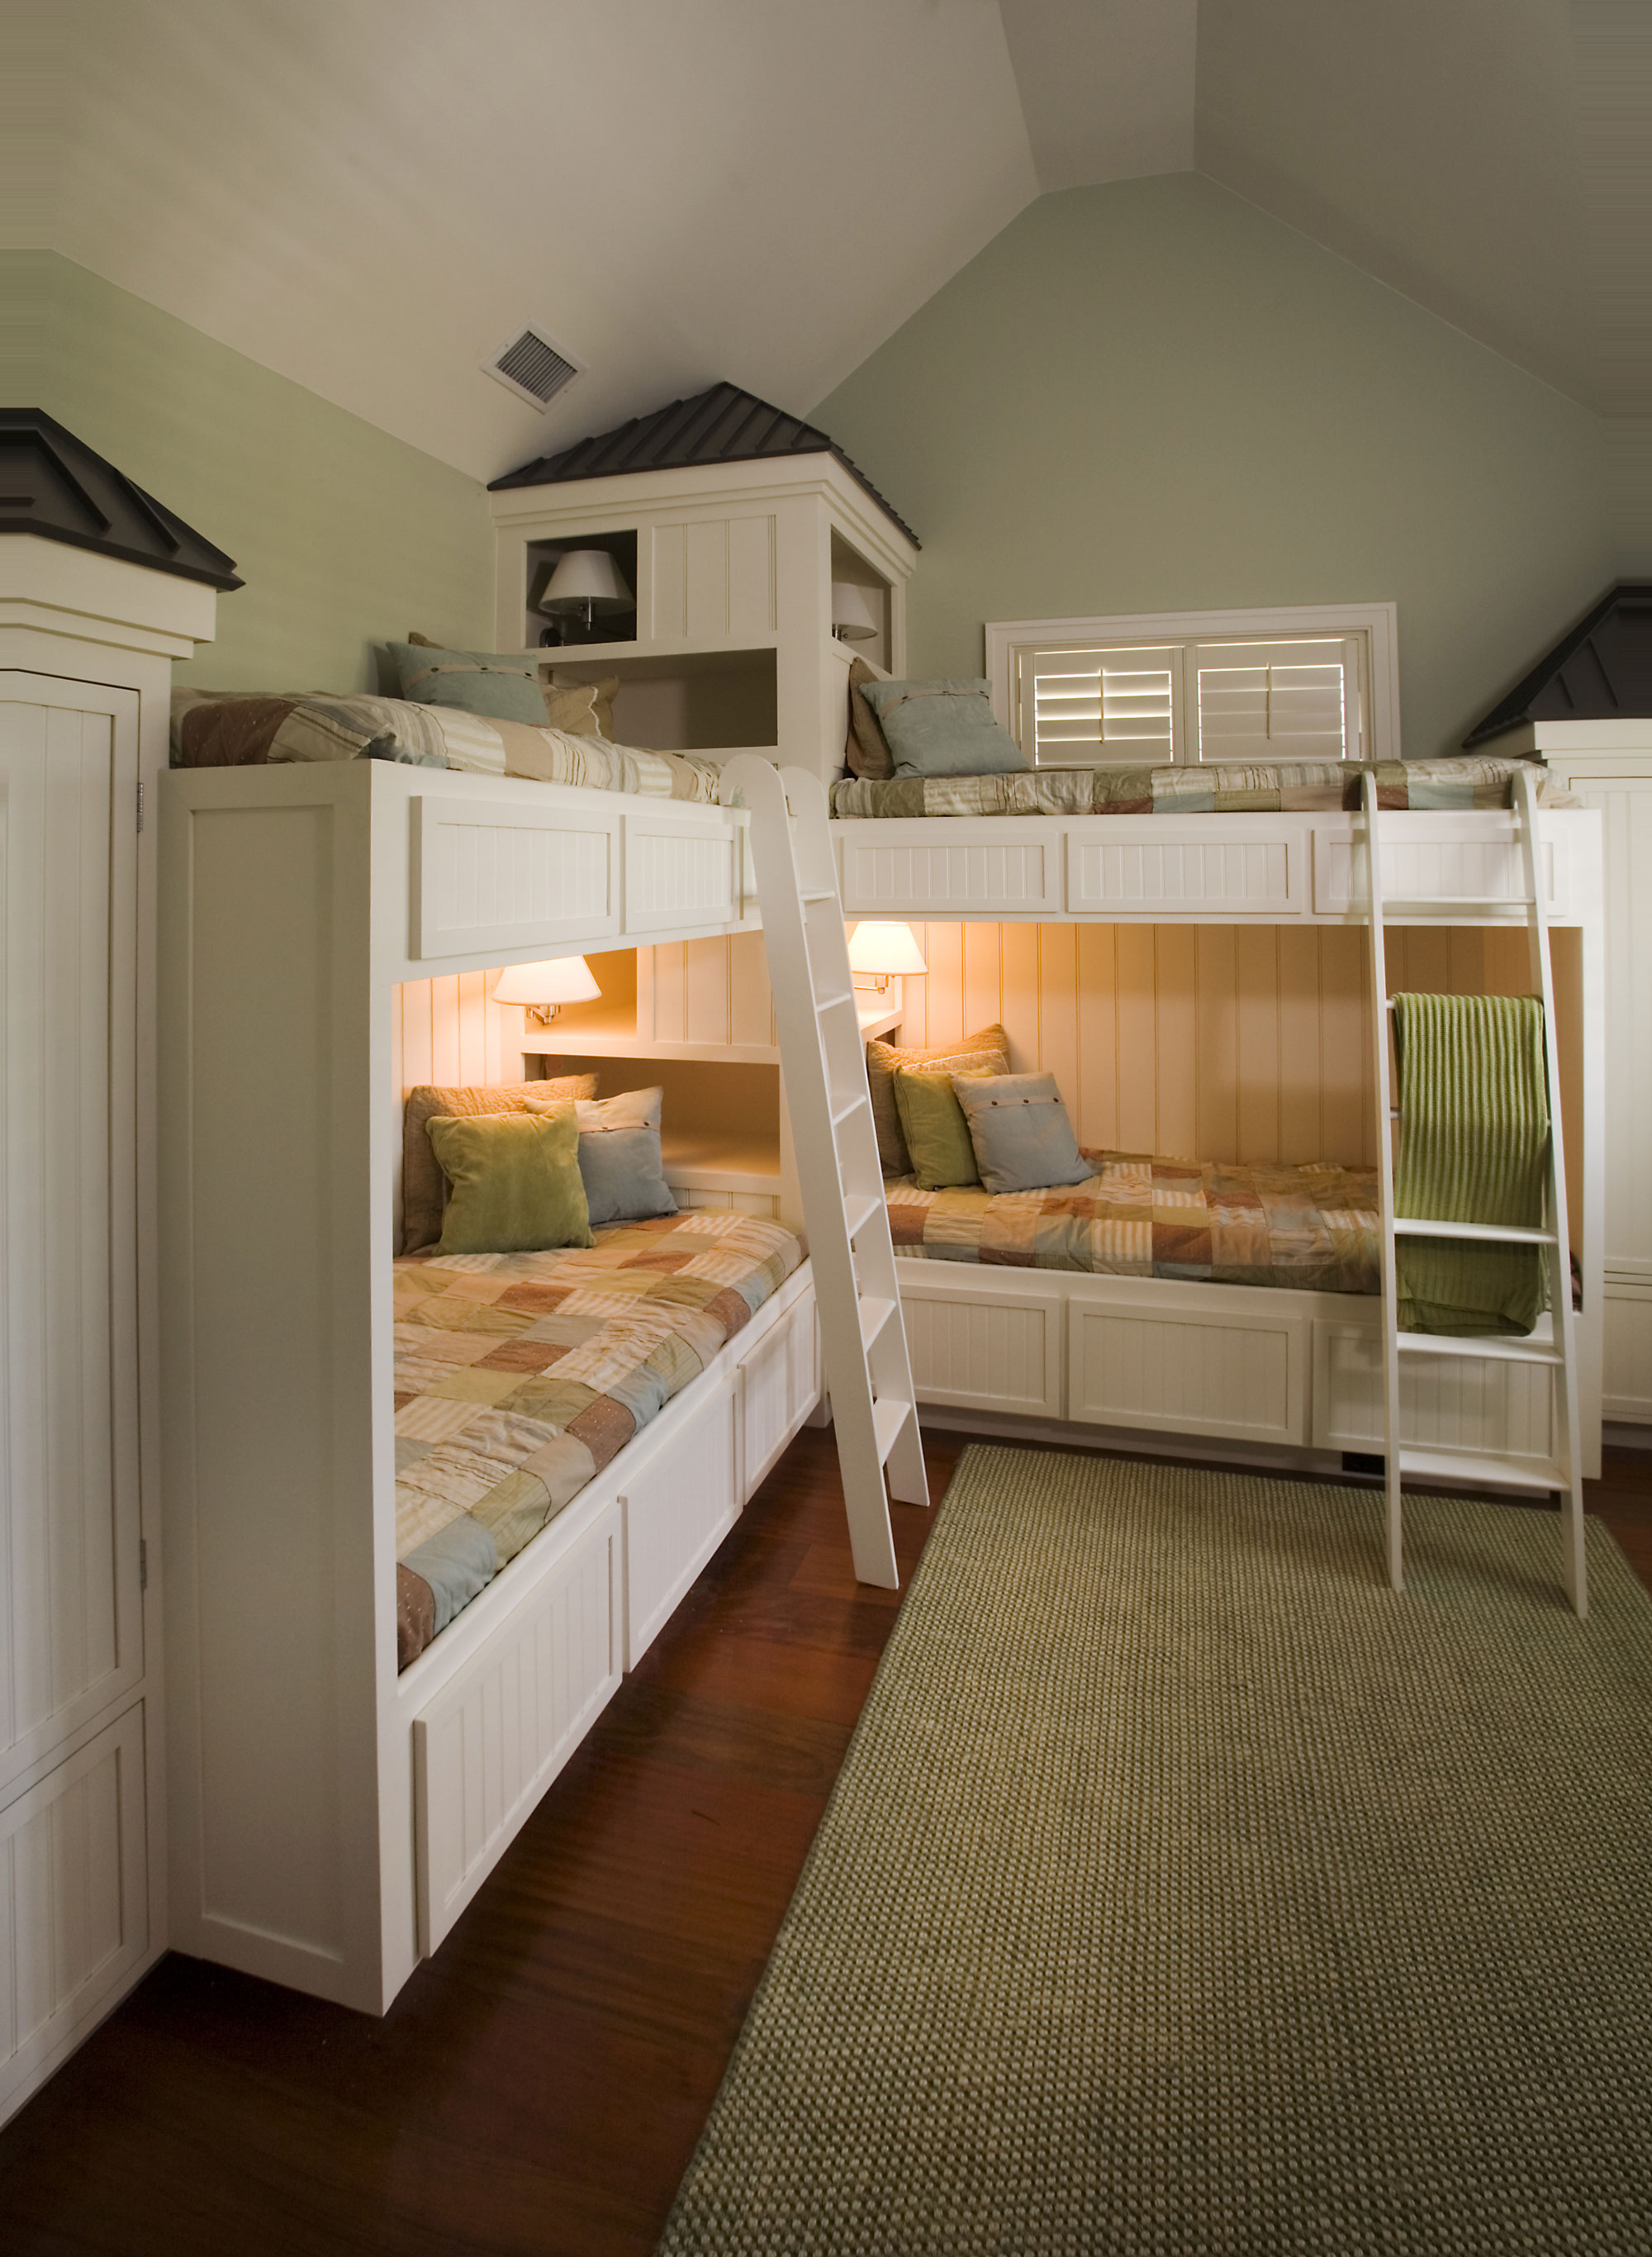 Bunk room, nautical style in beach house